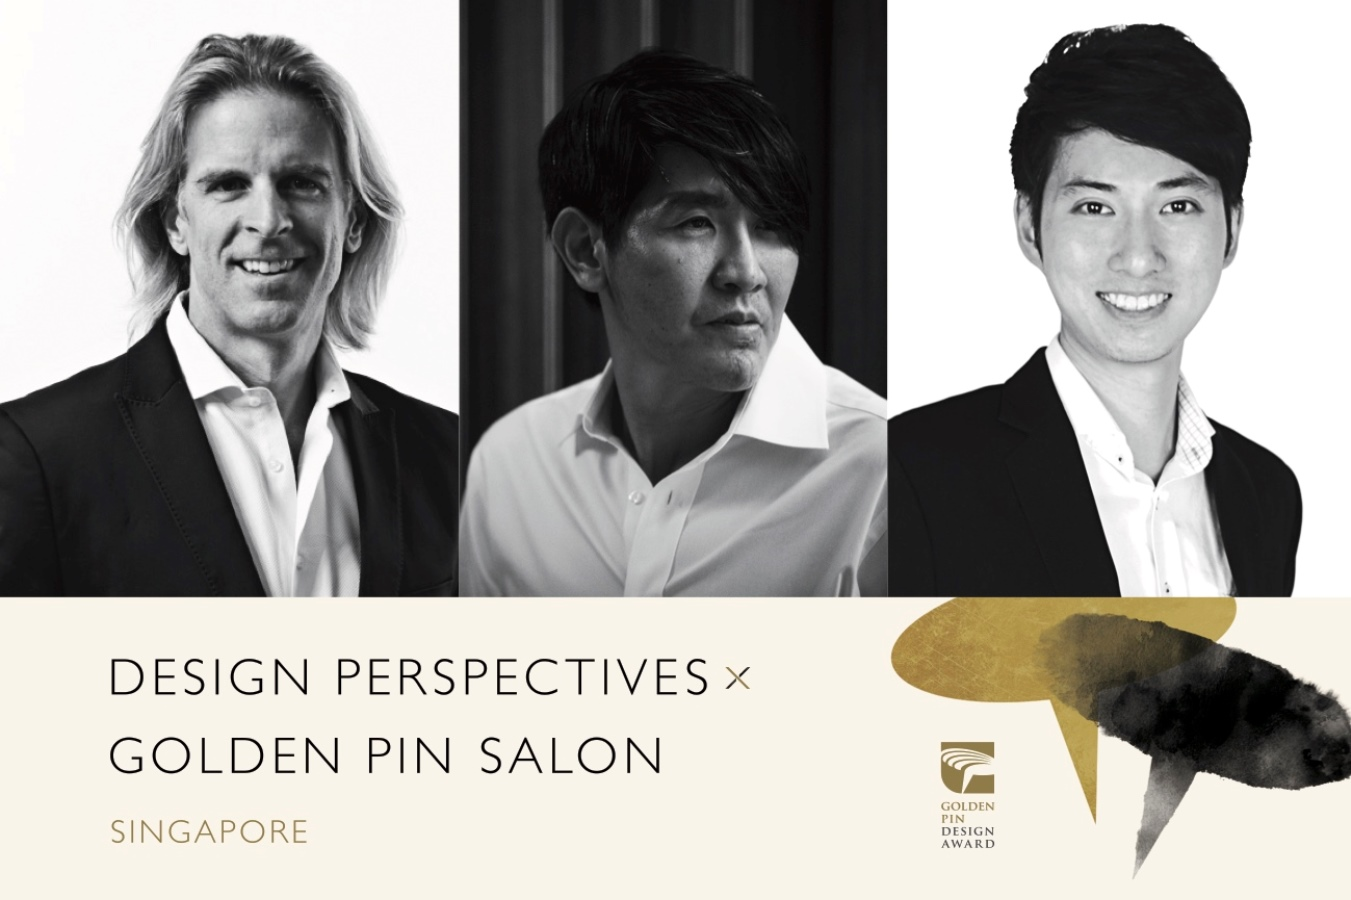 Design Perspectives x Golden Pin Salon in Singapore, 3 Design Gurus from Singapore and Taiwan in the Spotlight